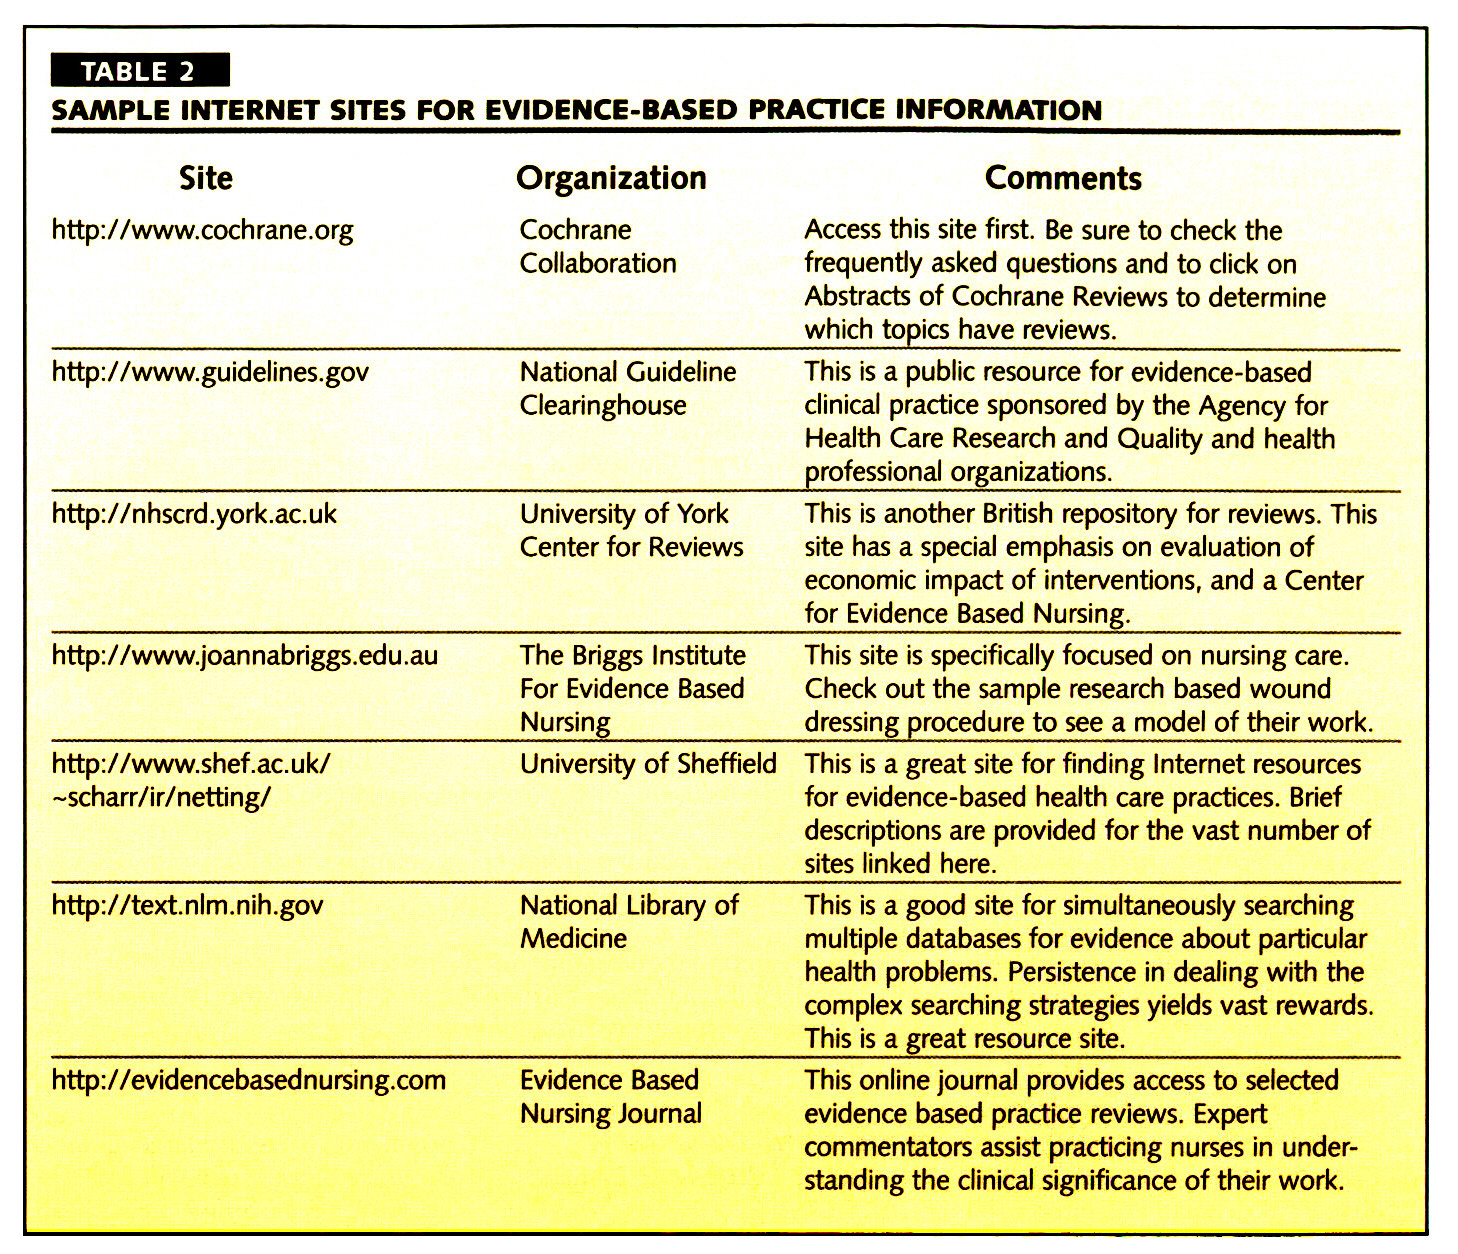 TABLE 2SAMPLE INTERNET SITES FOR EVIDENCE-BASED PRACTICE INFORAAATION